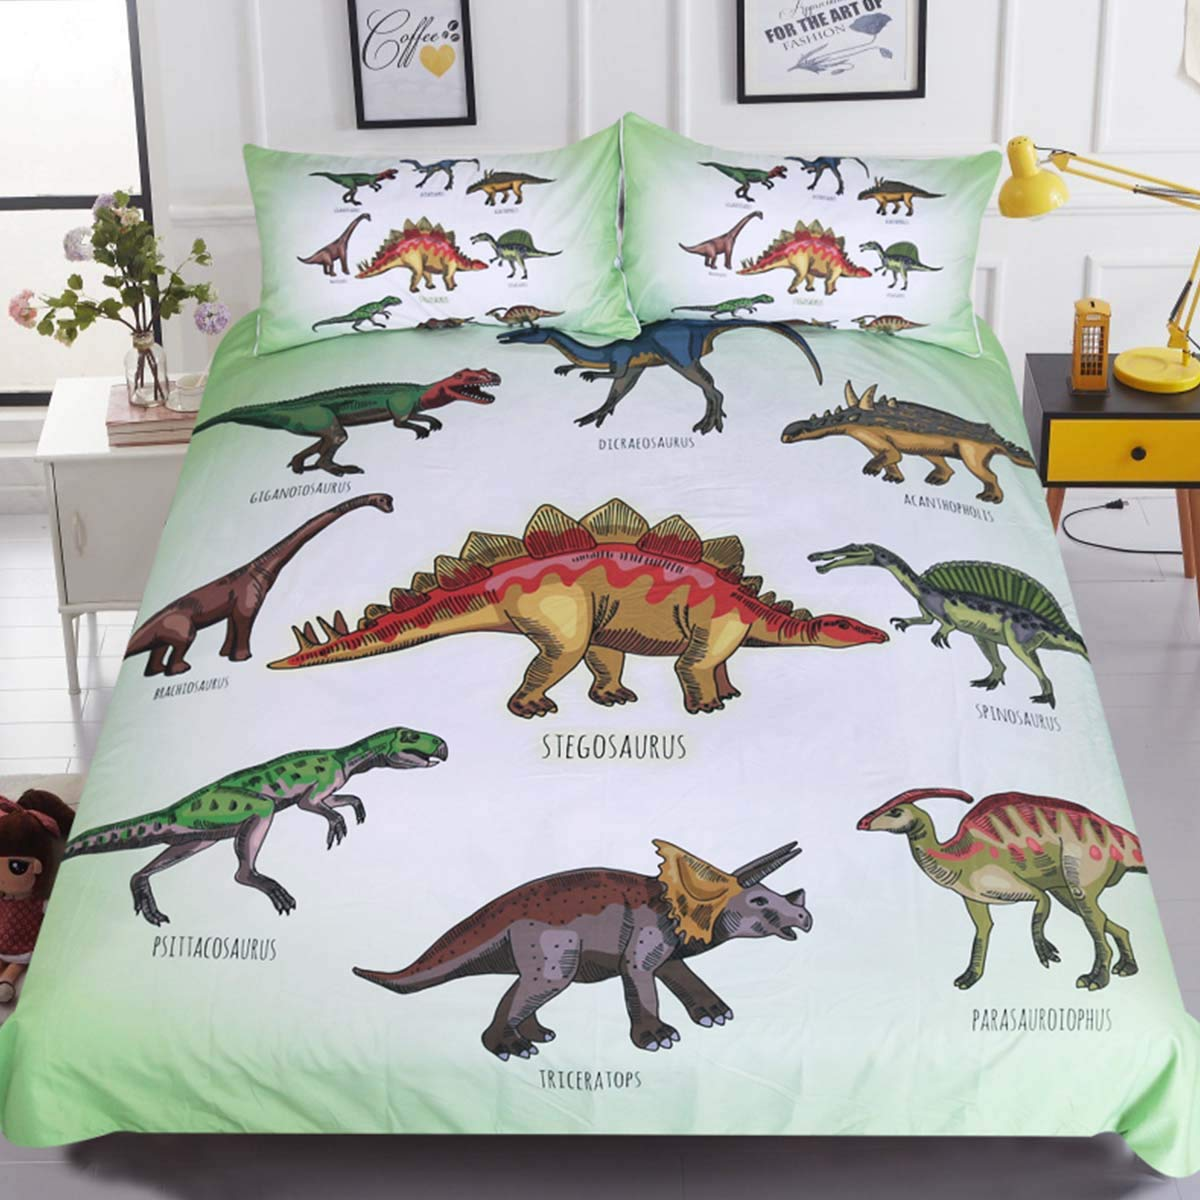 Sleepwish Dinosaur Print Kids Boys Girls Bedding Green White Ancient Animal Duvet Cover Super Soft 3 Pieces with 2 Pillow Cases (Twin)